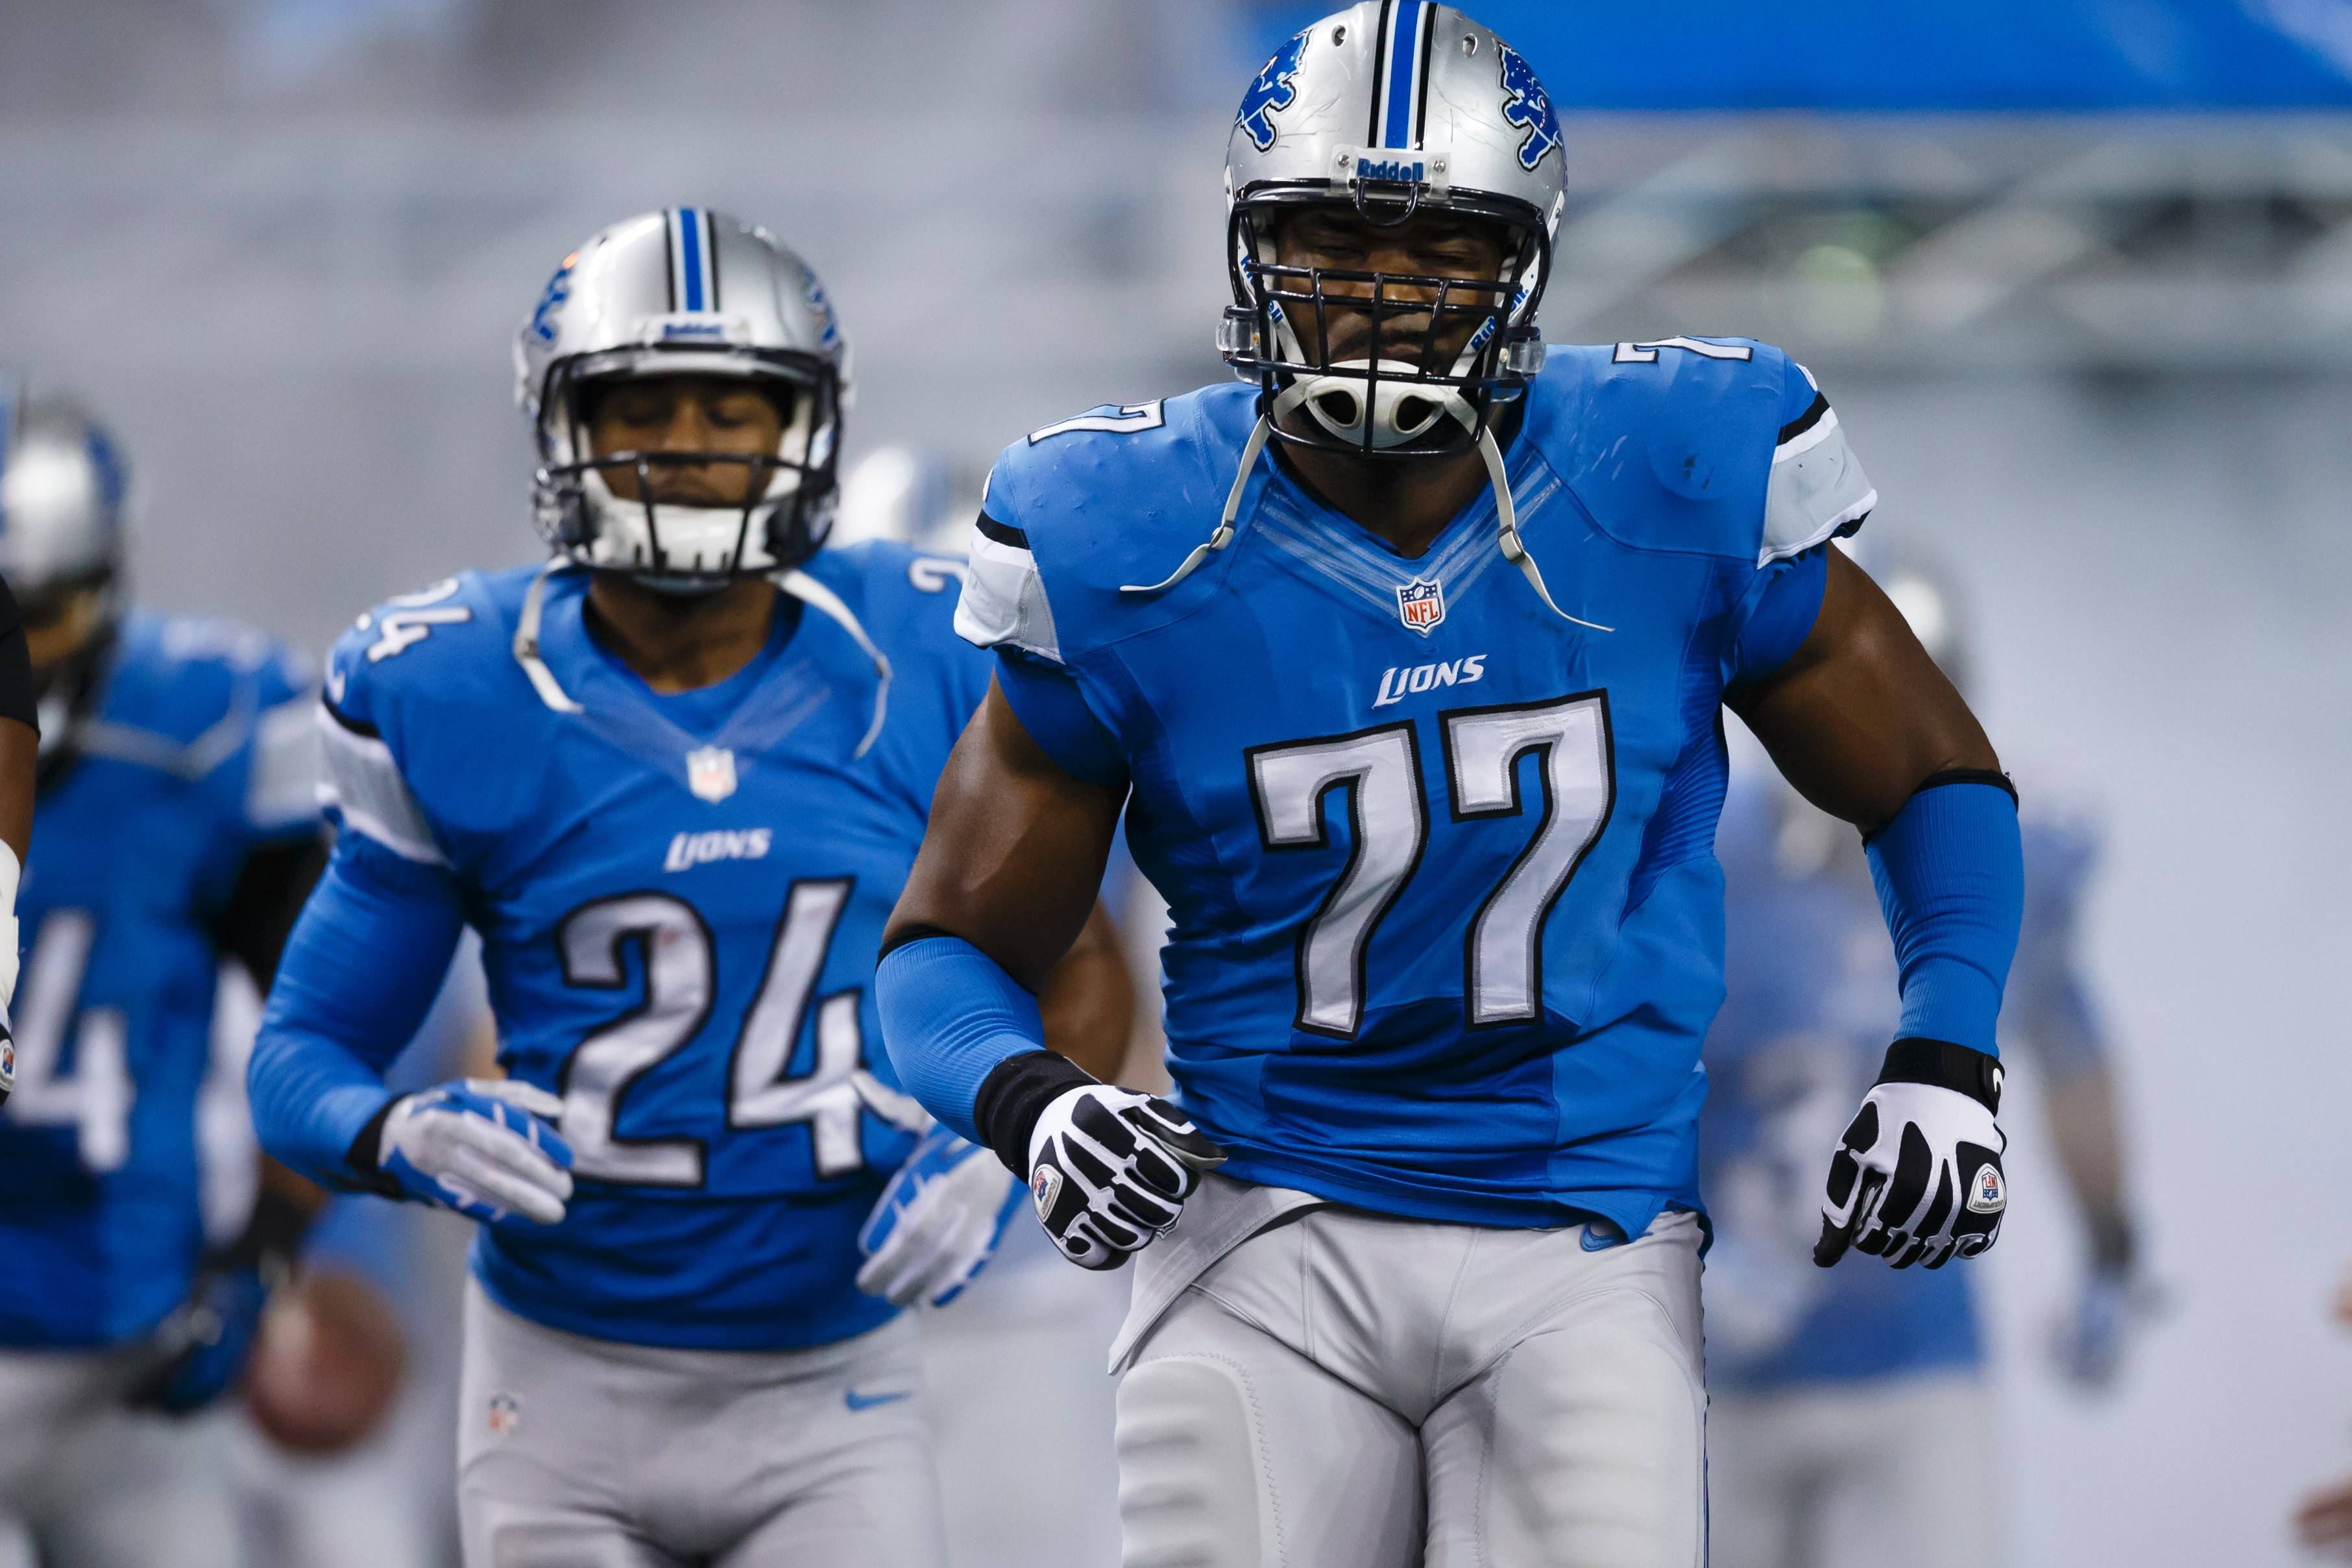 After a year with the Detroit Lions, defensive end Israel Idonije (77) is returning to the Chicago Bears with a one-year deal.